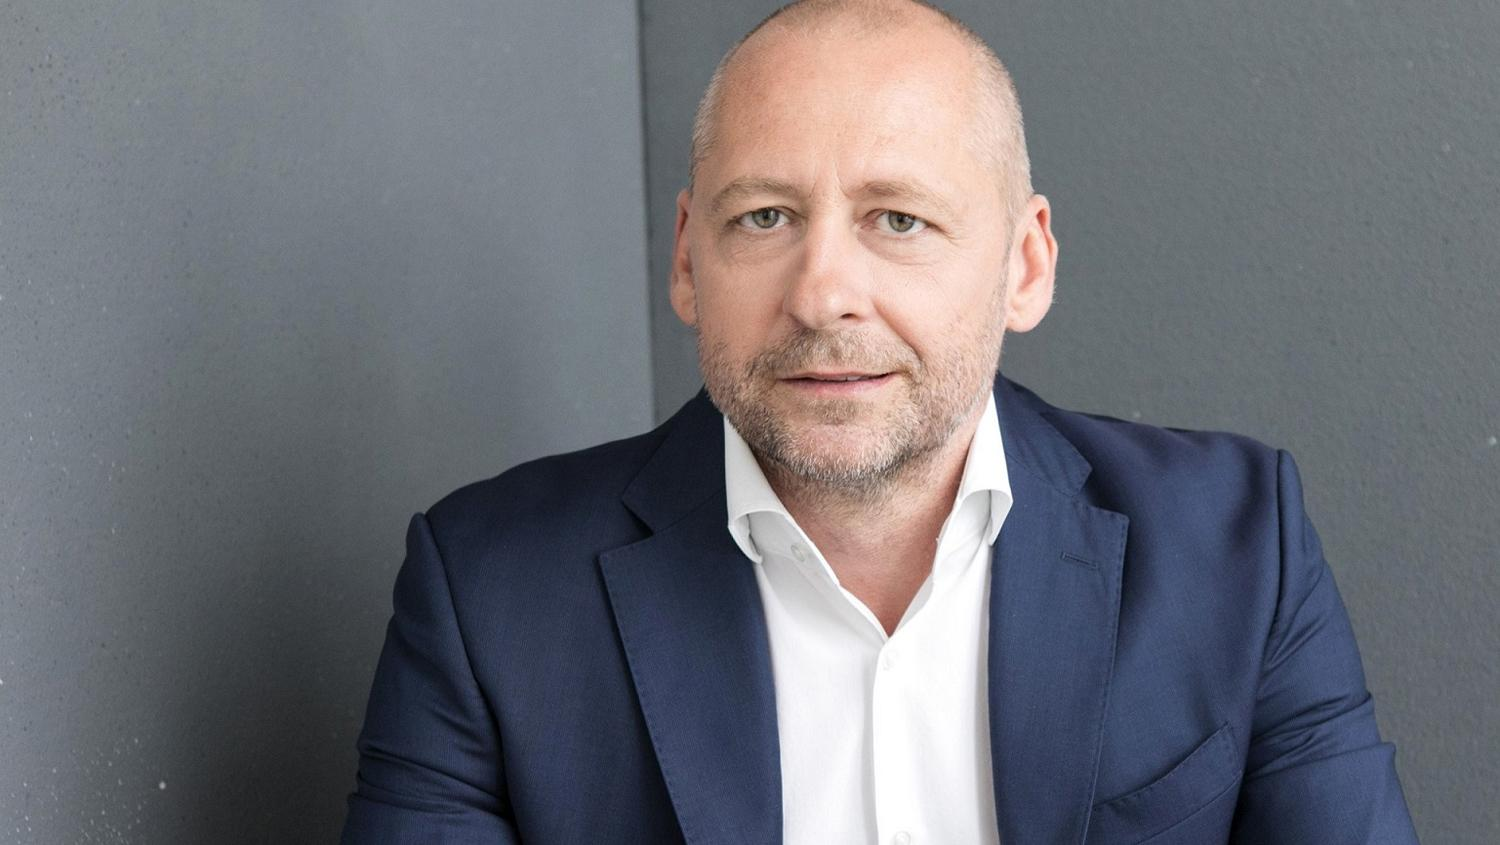 Boris Raoul, CEO der Invia Group Germany, ist mit Invia Flights dem VIR beigetreten.